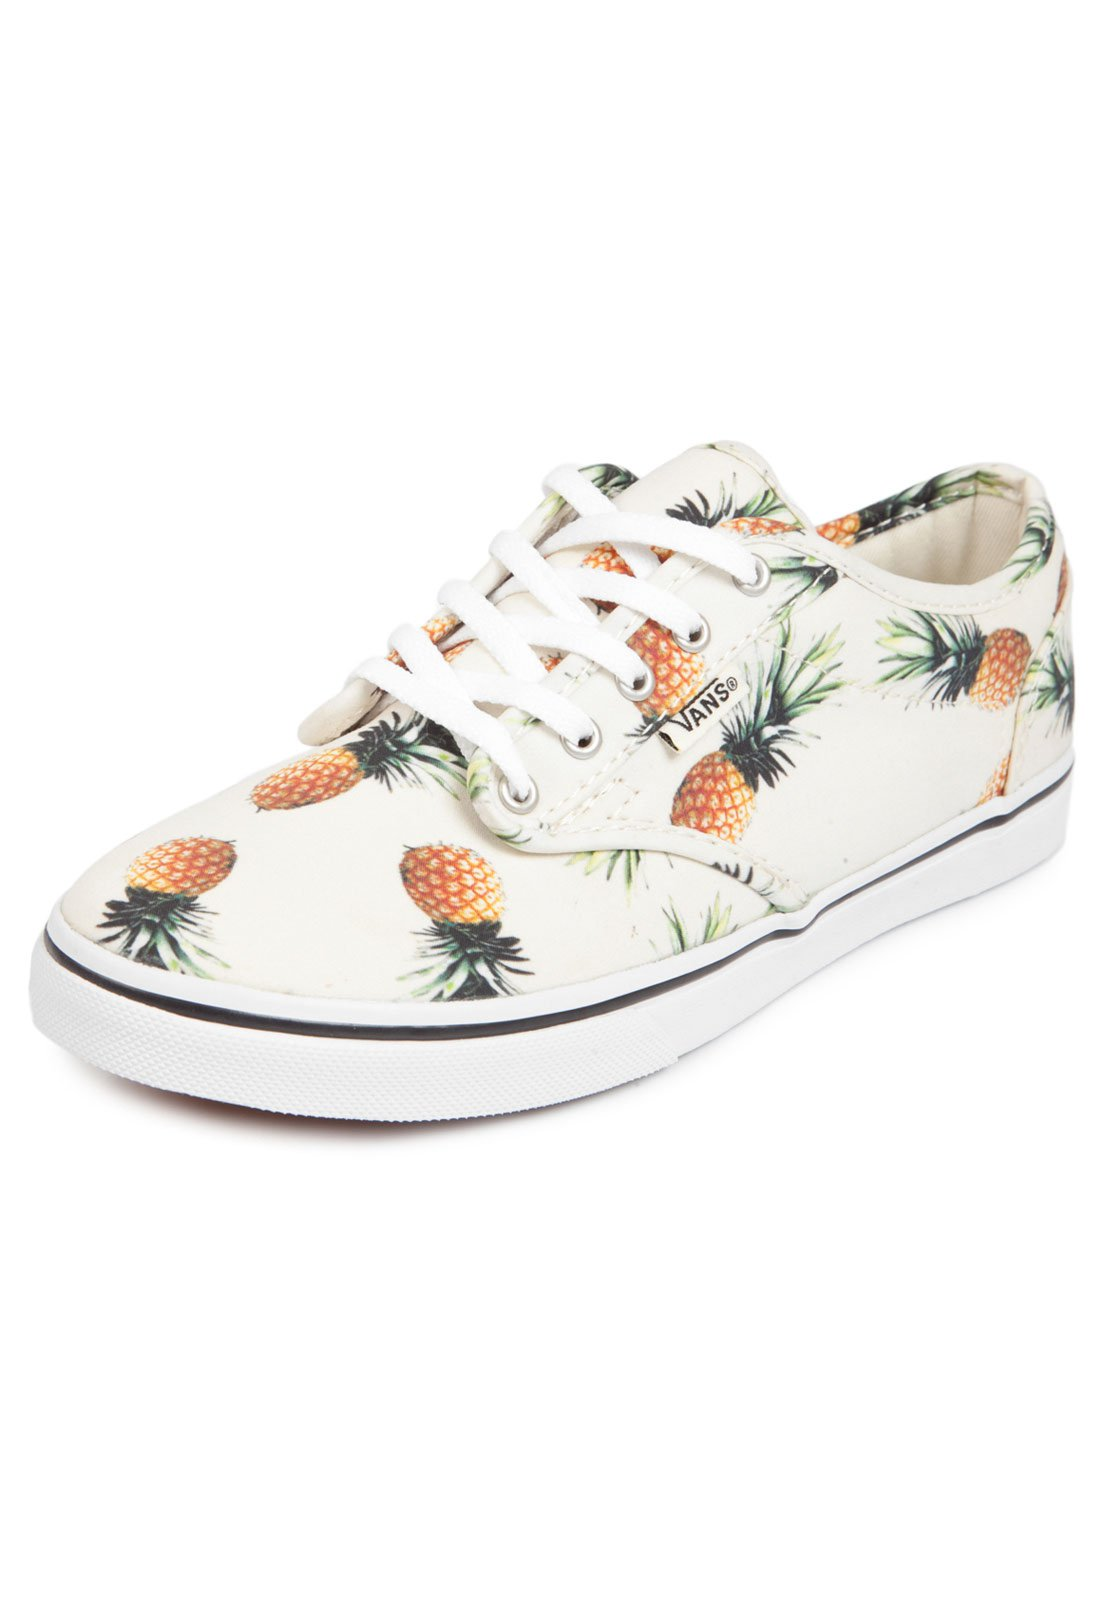 57f06898cb Tênis Vans Atwood Low Pineapple Branco - Compre Agora